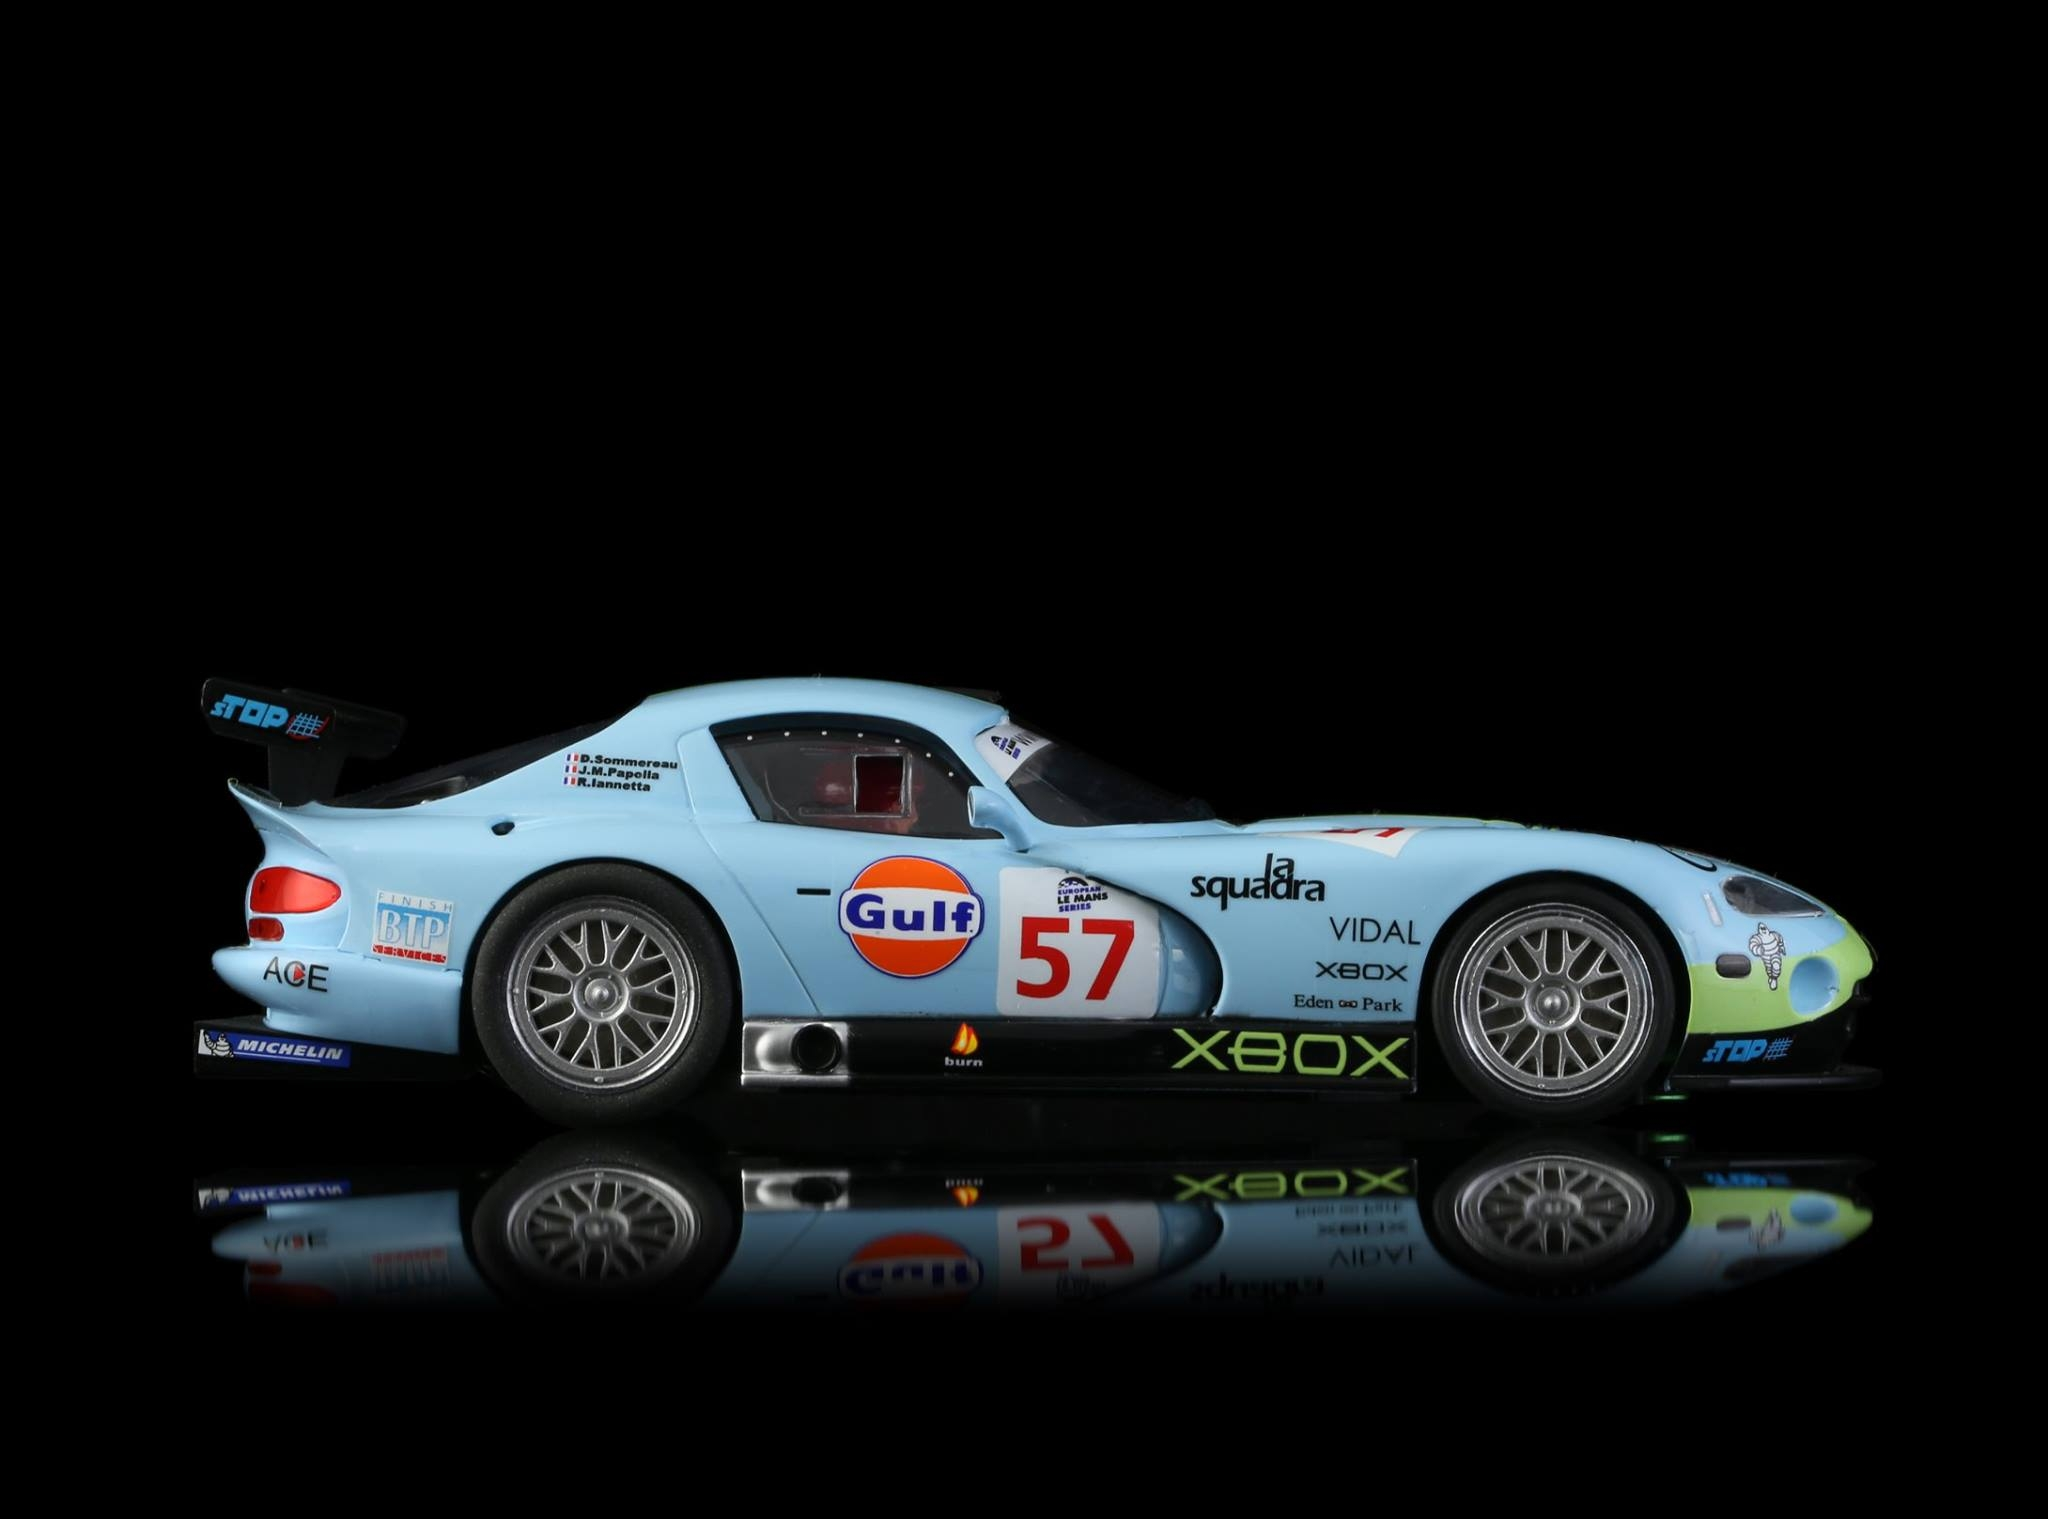 Viper GTS - Paul Belmondo Racing - Gulf #57